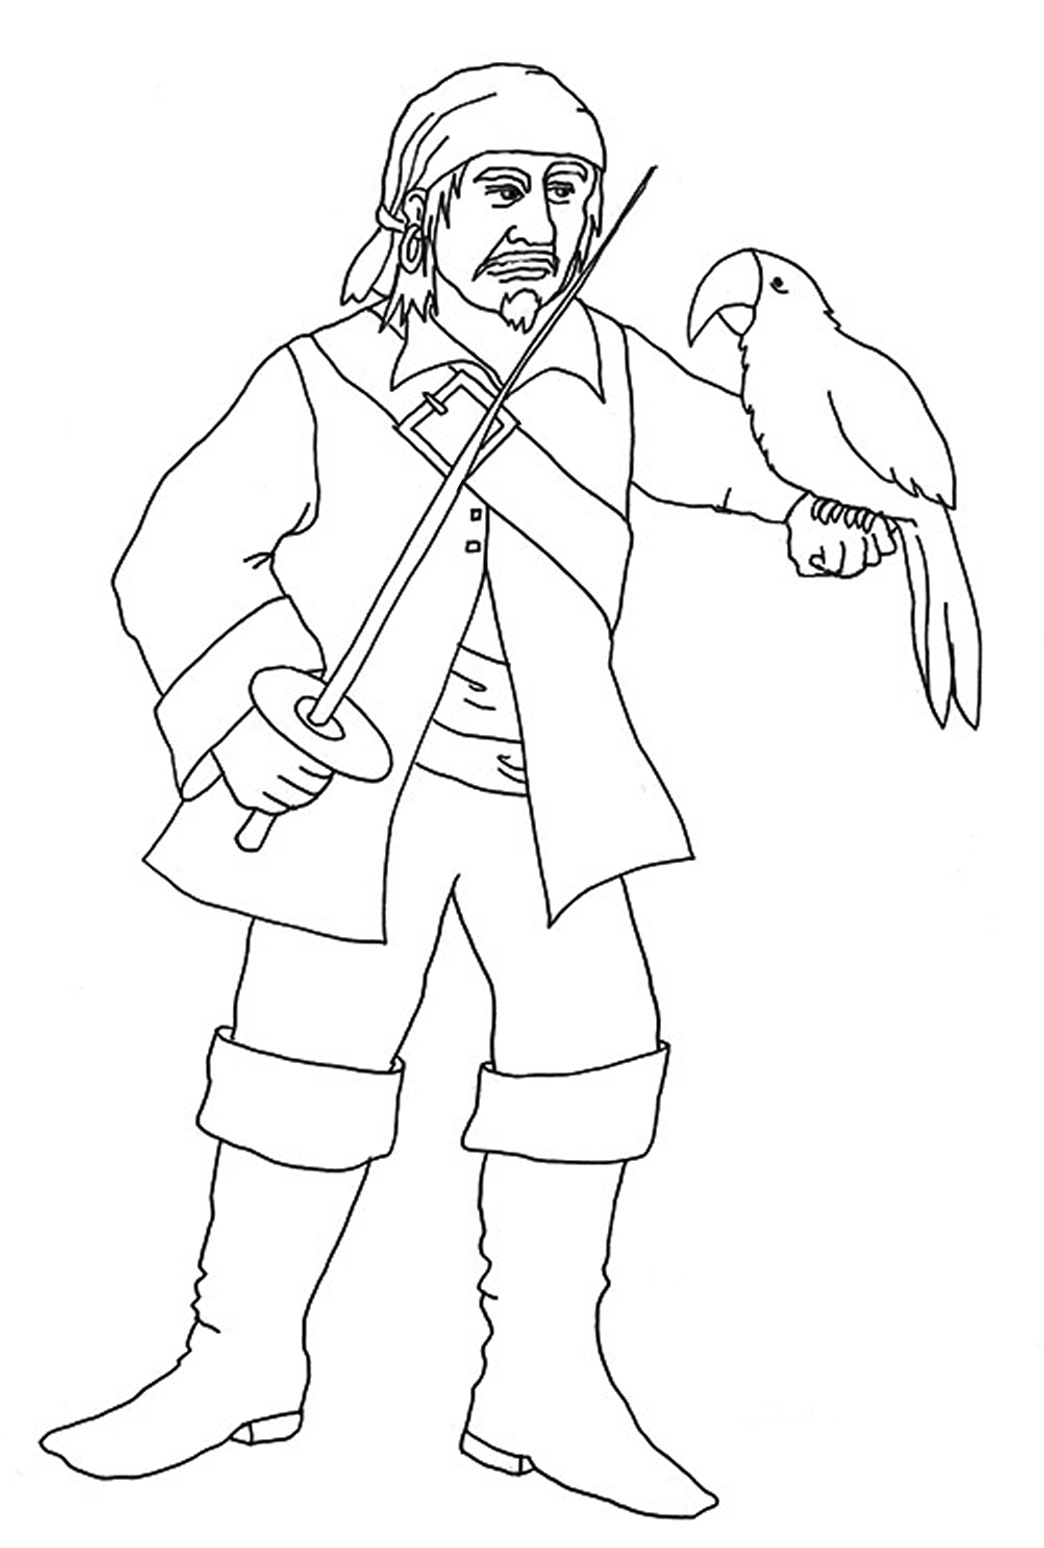 pirate coloring pirate difficult pirates coloring pages for kids to coloring pirate